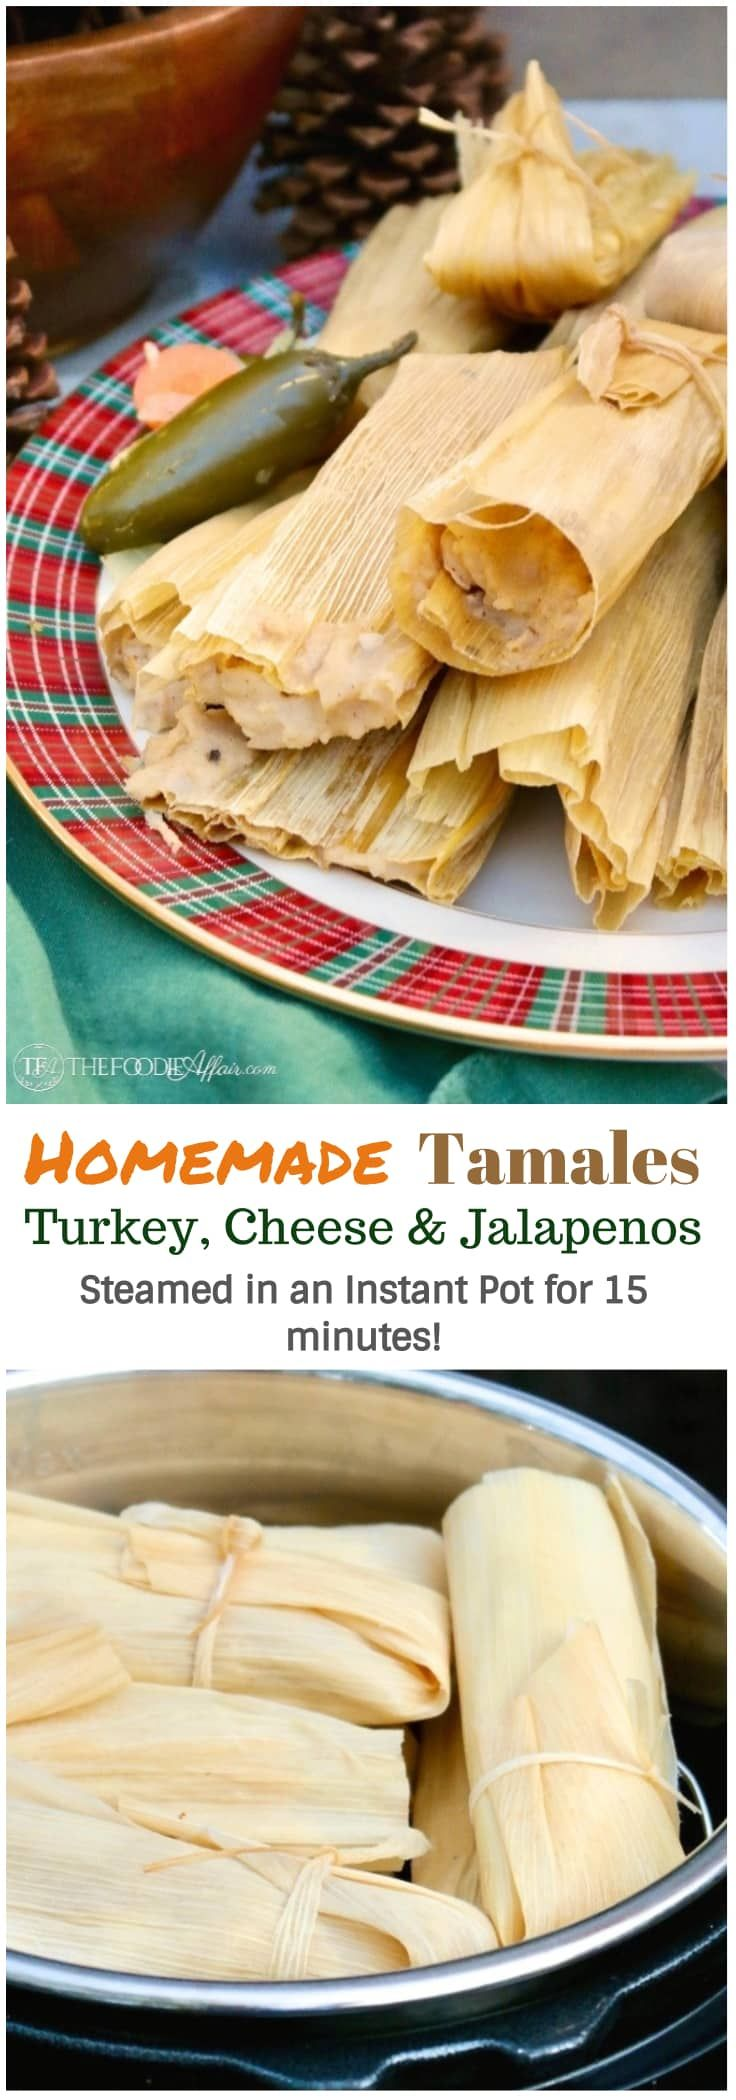 Homemade tamales may seem daunting to make, but this recipe will give you easy step by step instructions on how to make turkey and cheese & jalapeño tamales from ingredients found at most grocery stores.